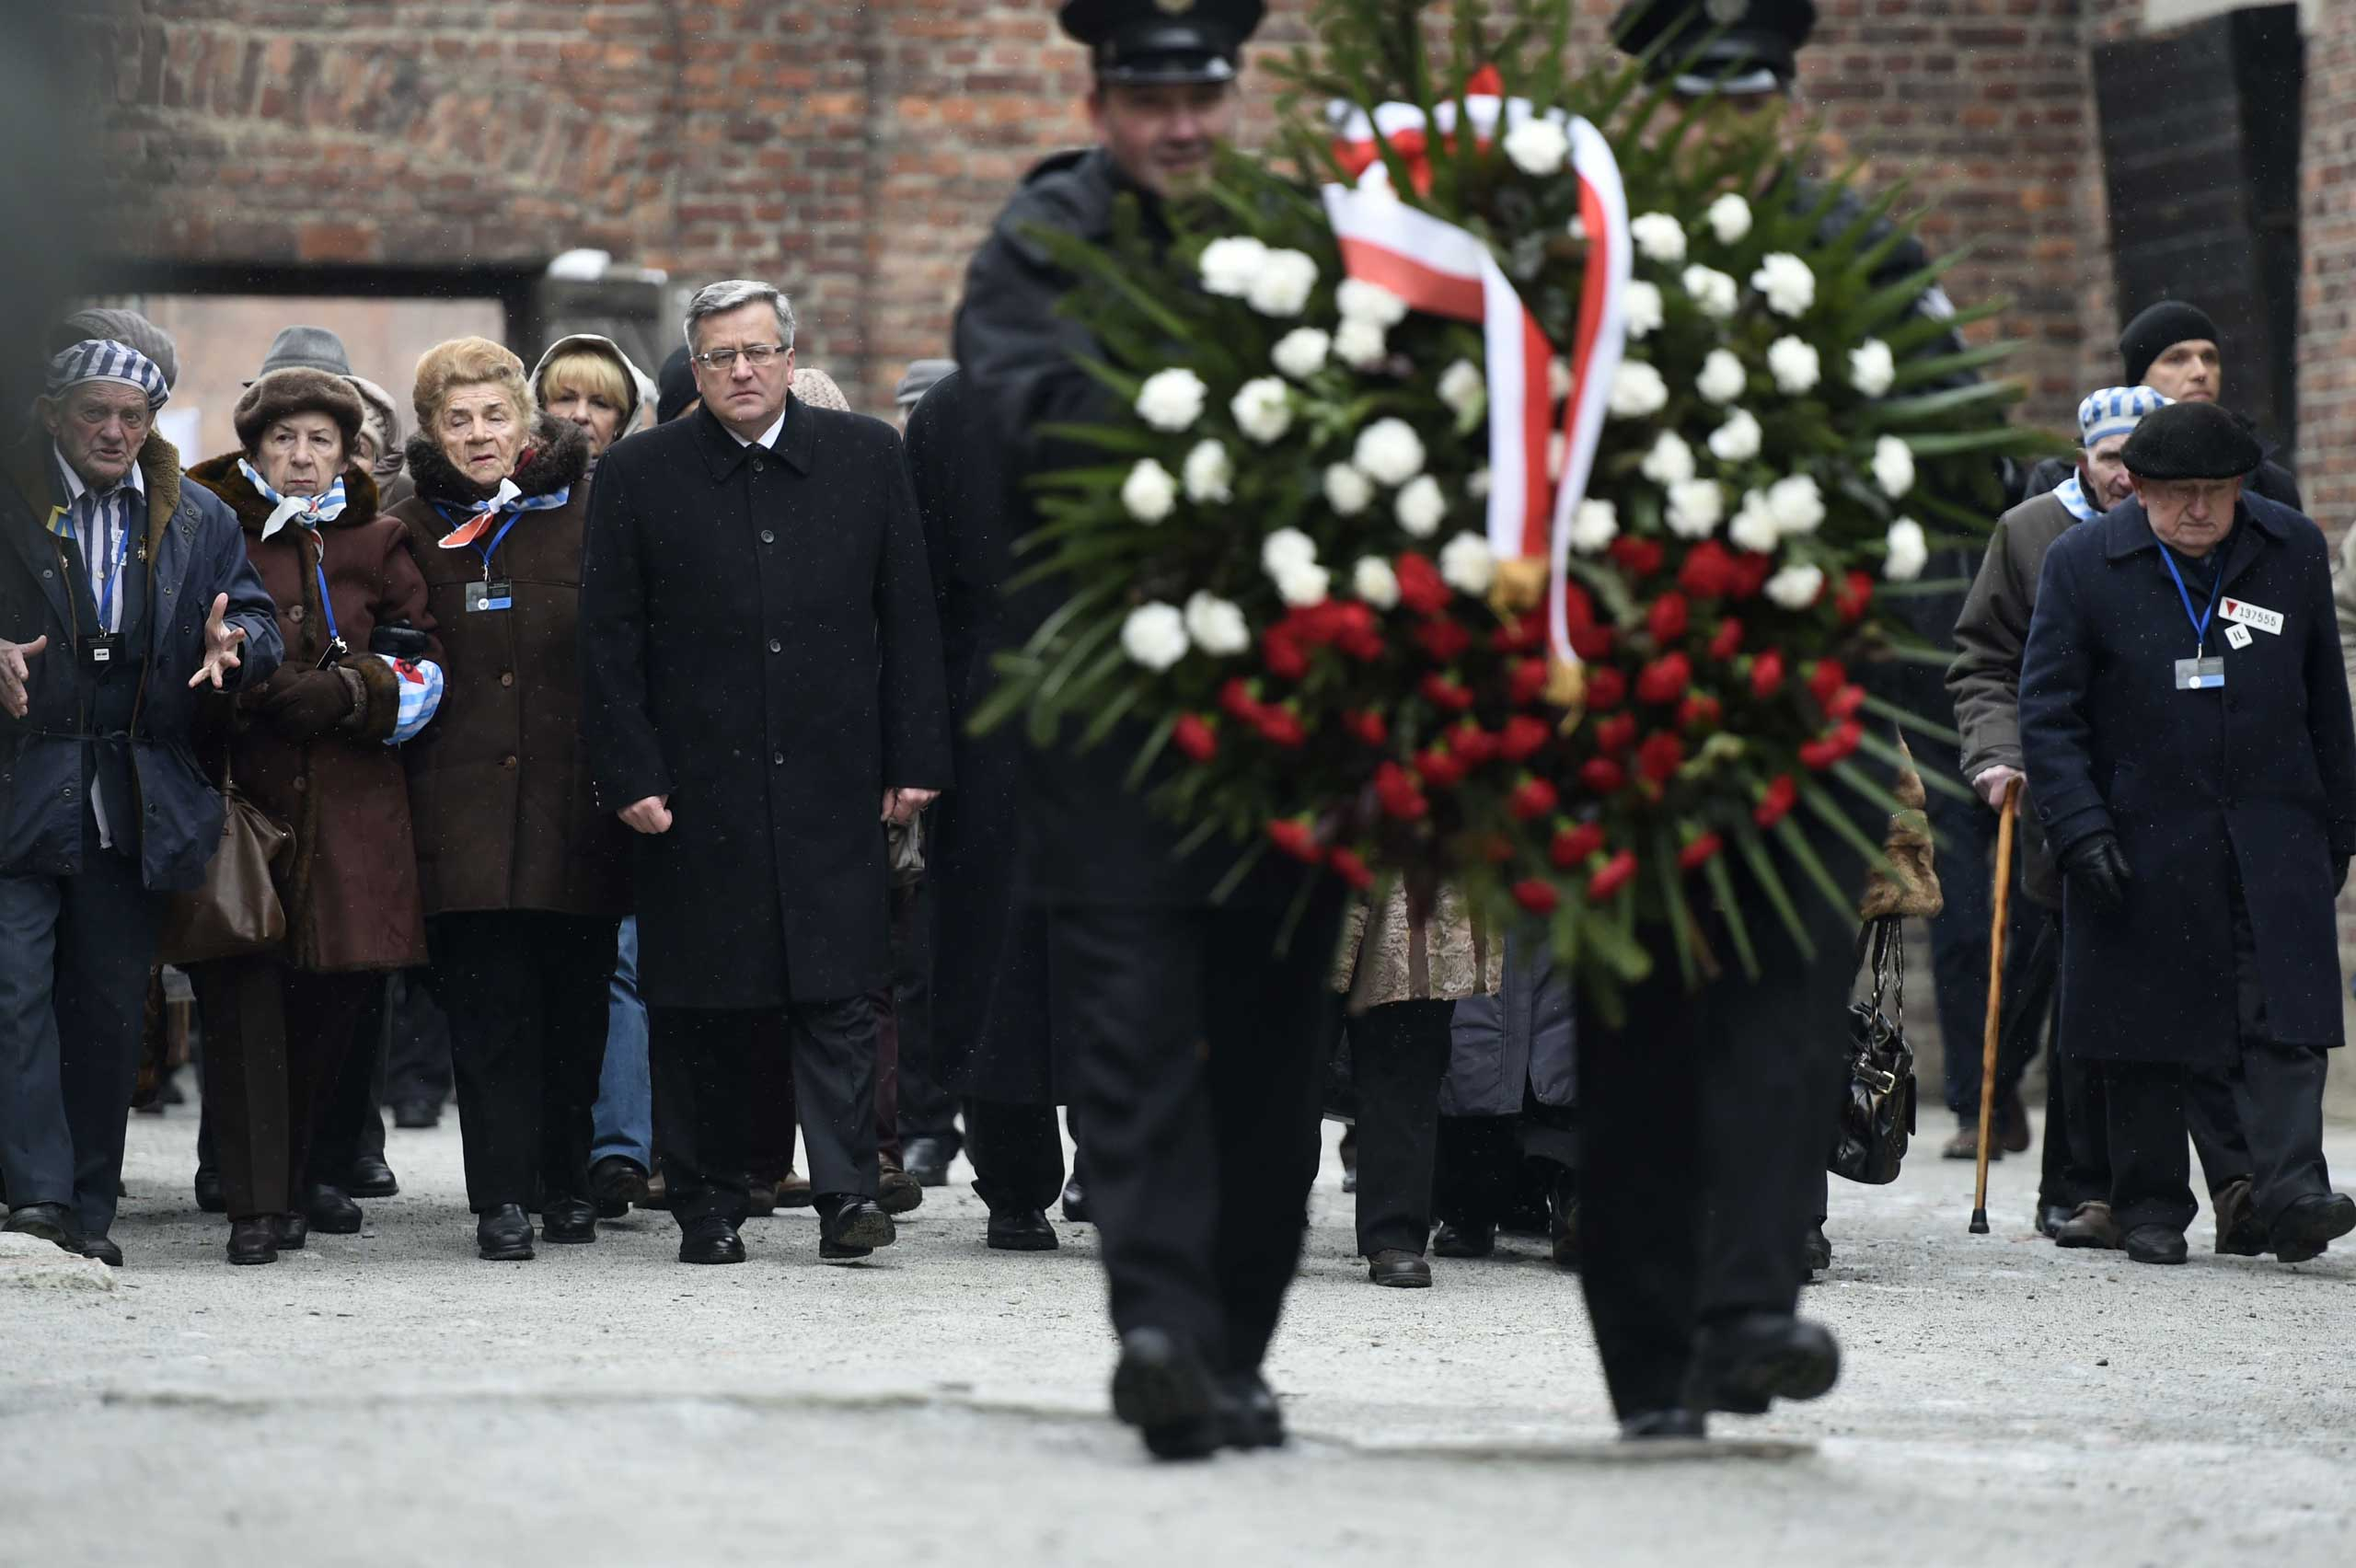 Polish President Bronislaw Komorowski and Auschwitz survivors lay down a wreath at the death wall of the former Auschwitz concentration camp on Jan. 27, 2015 at the Auschwitz-Birkenau memorial site in Oswiecim.